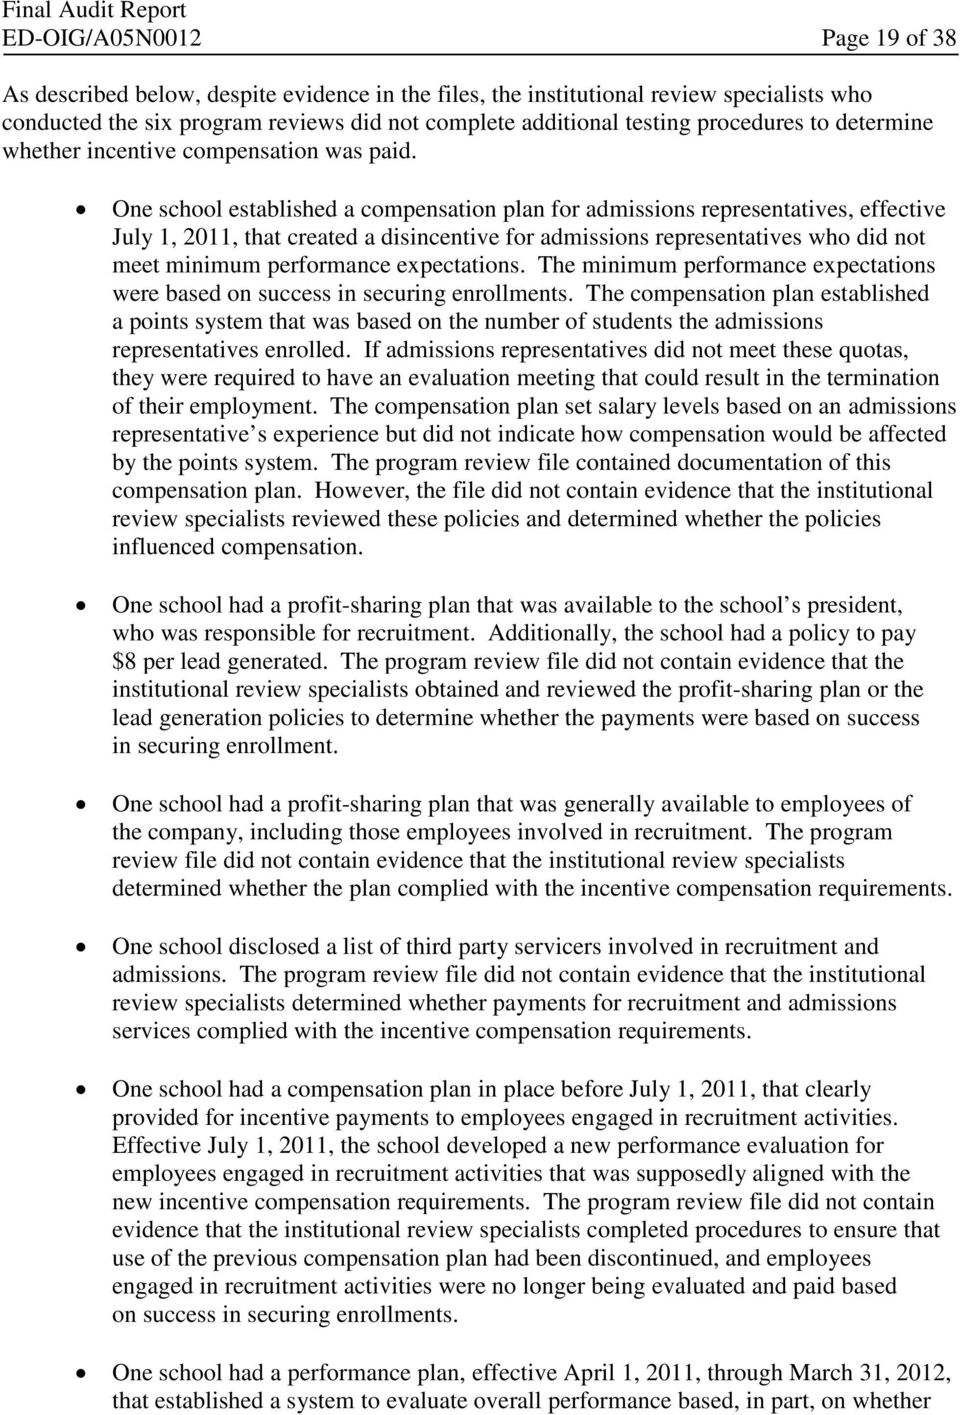 One school established a compensation plan for admissions representatives, effective July 1, 2011, that created a disincentive for admissions representatives who did not meet minimum performance